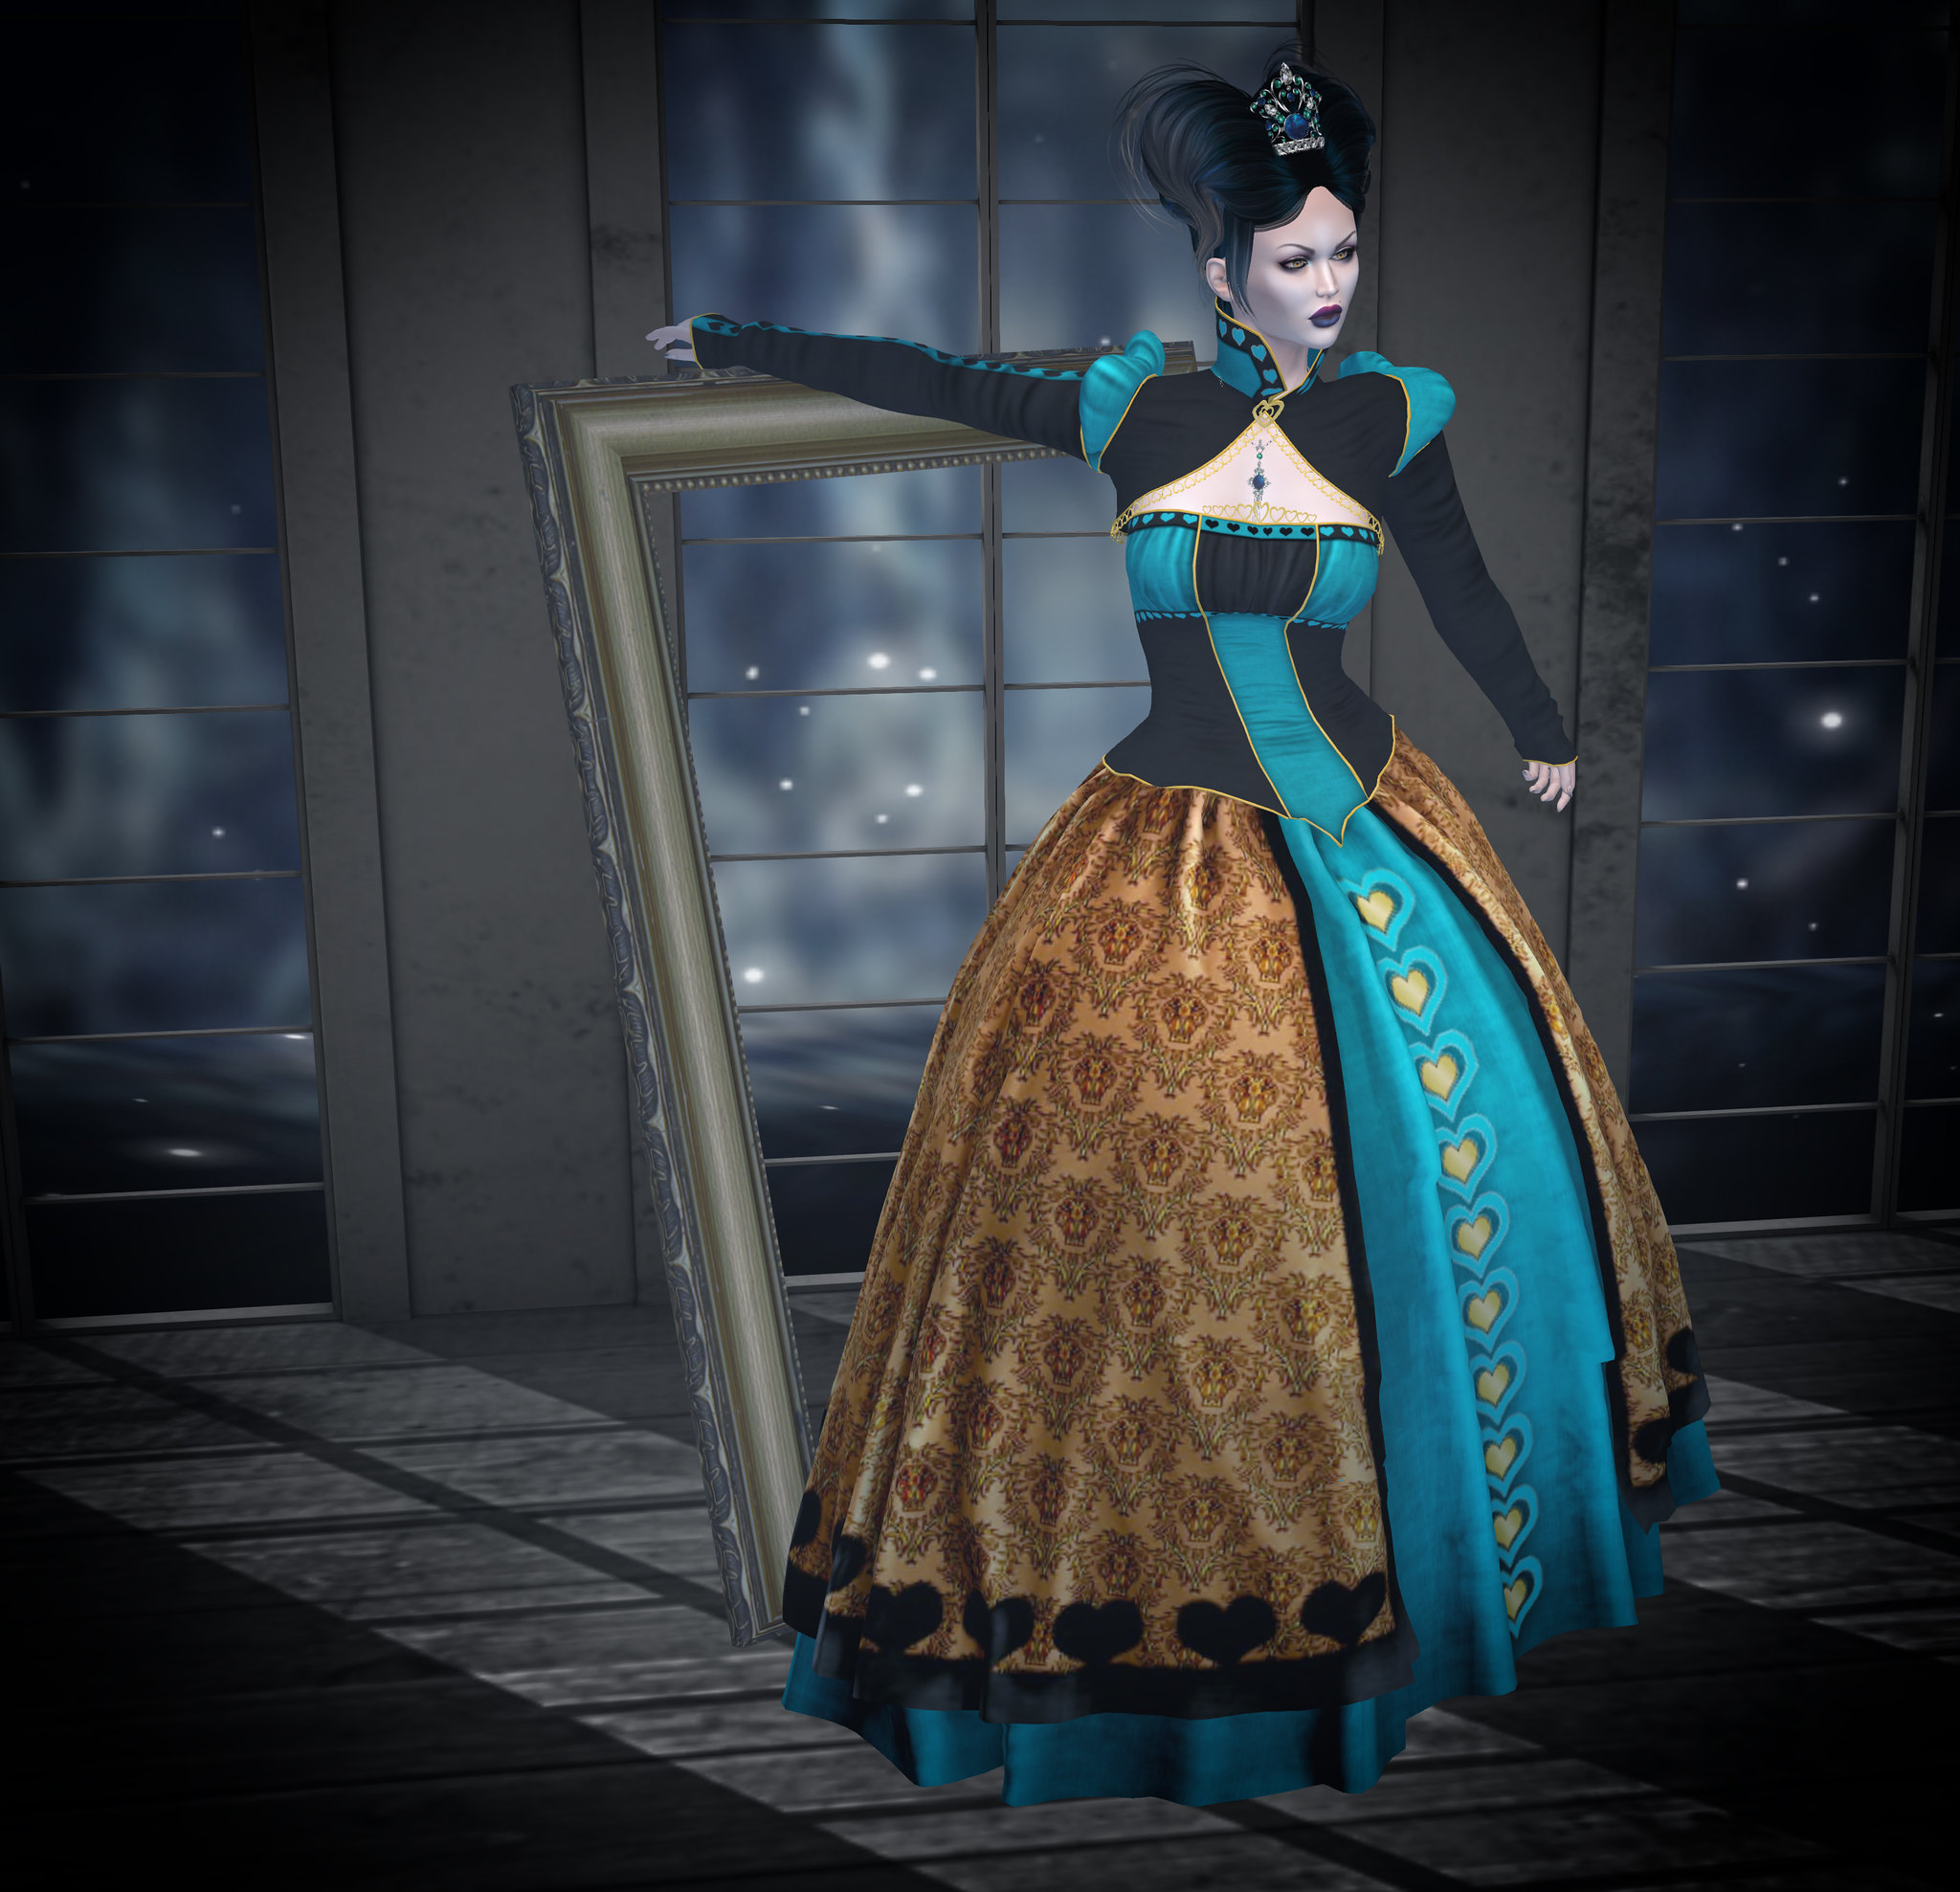 Iracebeth of Crim gown, teal, SMD @ Enchantment